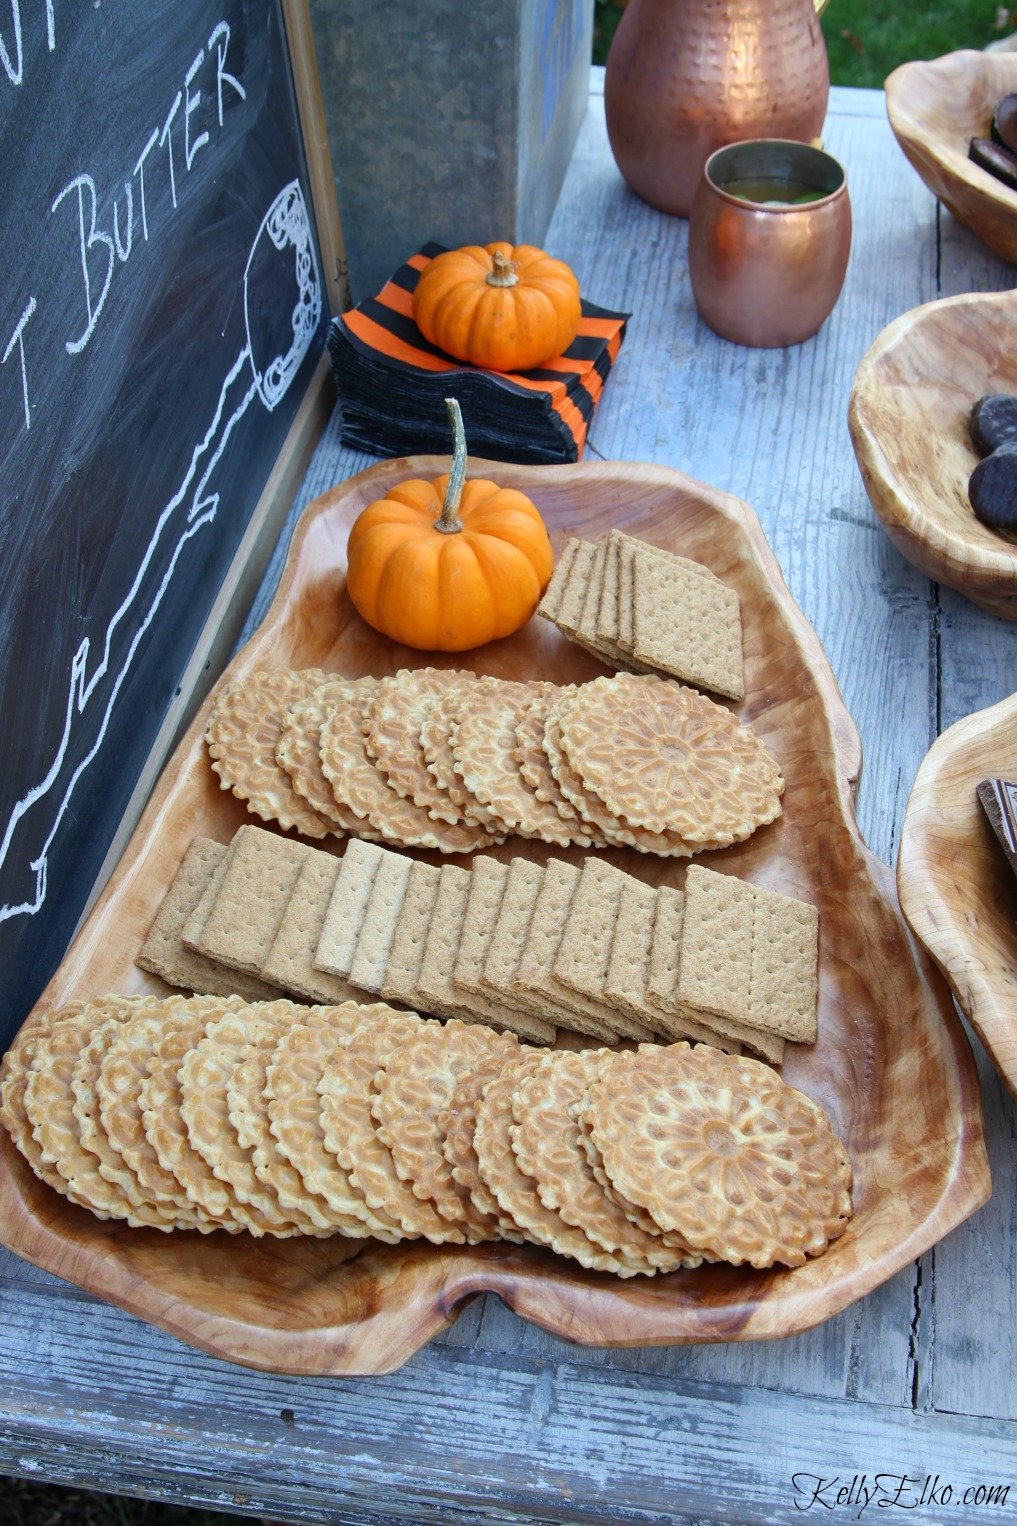 Love this wood platter filled with s'mores fixings - graham crackers and pizzelle cookies kellyelko.com